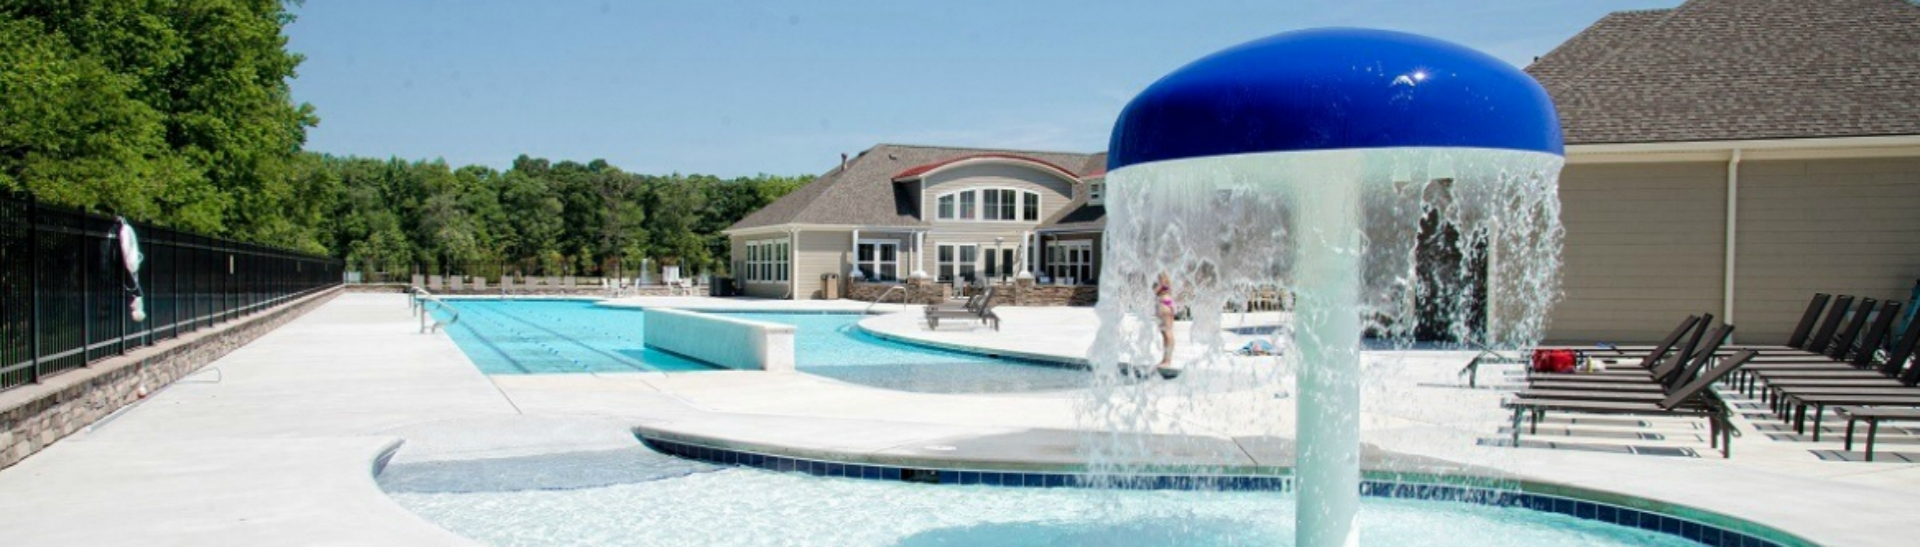 Coastline Pool Services - Quality pool care all season long!